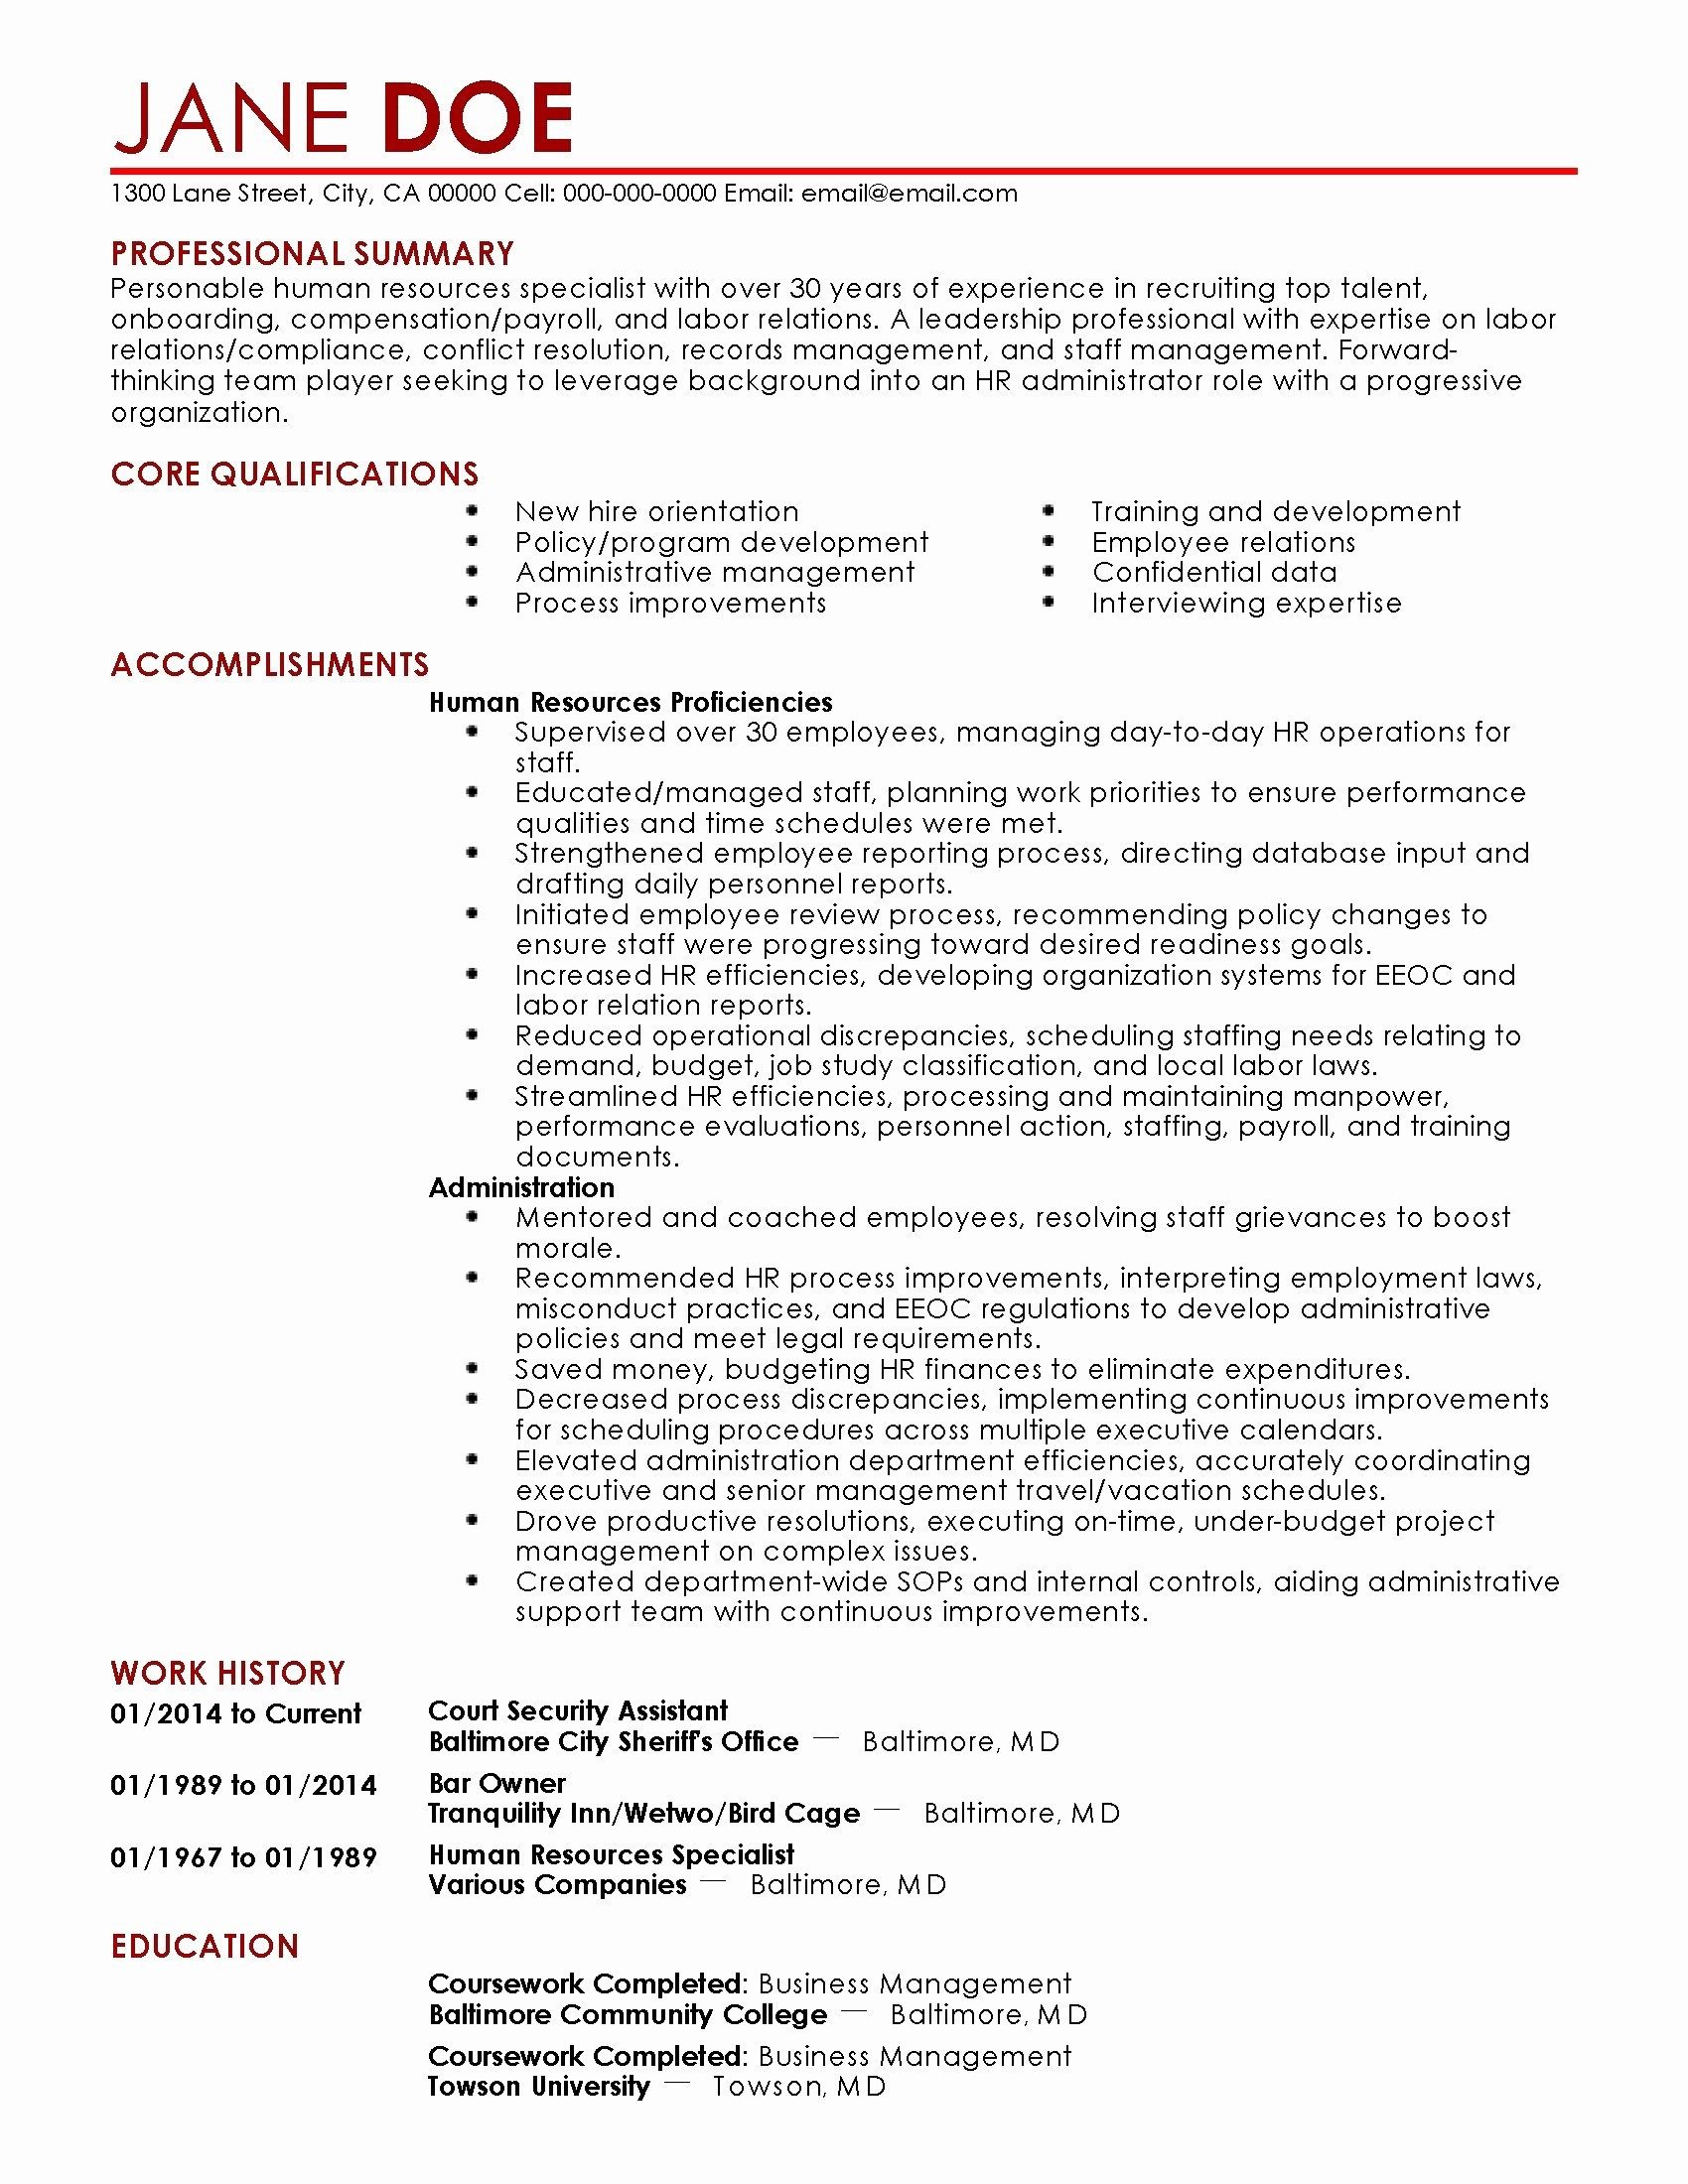 resume template medical assistant example-Medical assistant resume template lovely medical assistant resumes new medical resumes 0d bizmancan 7-b